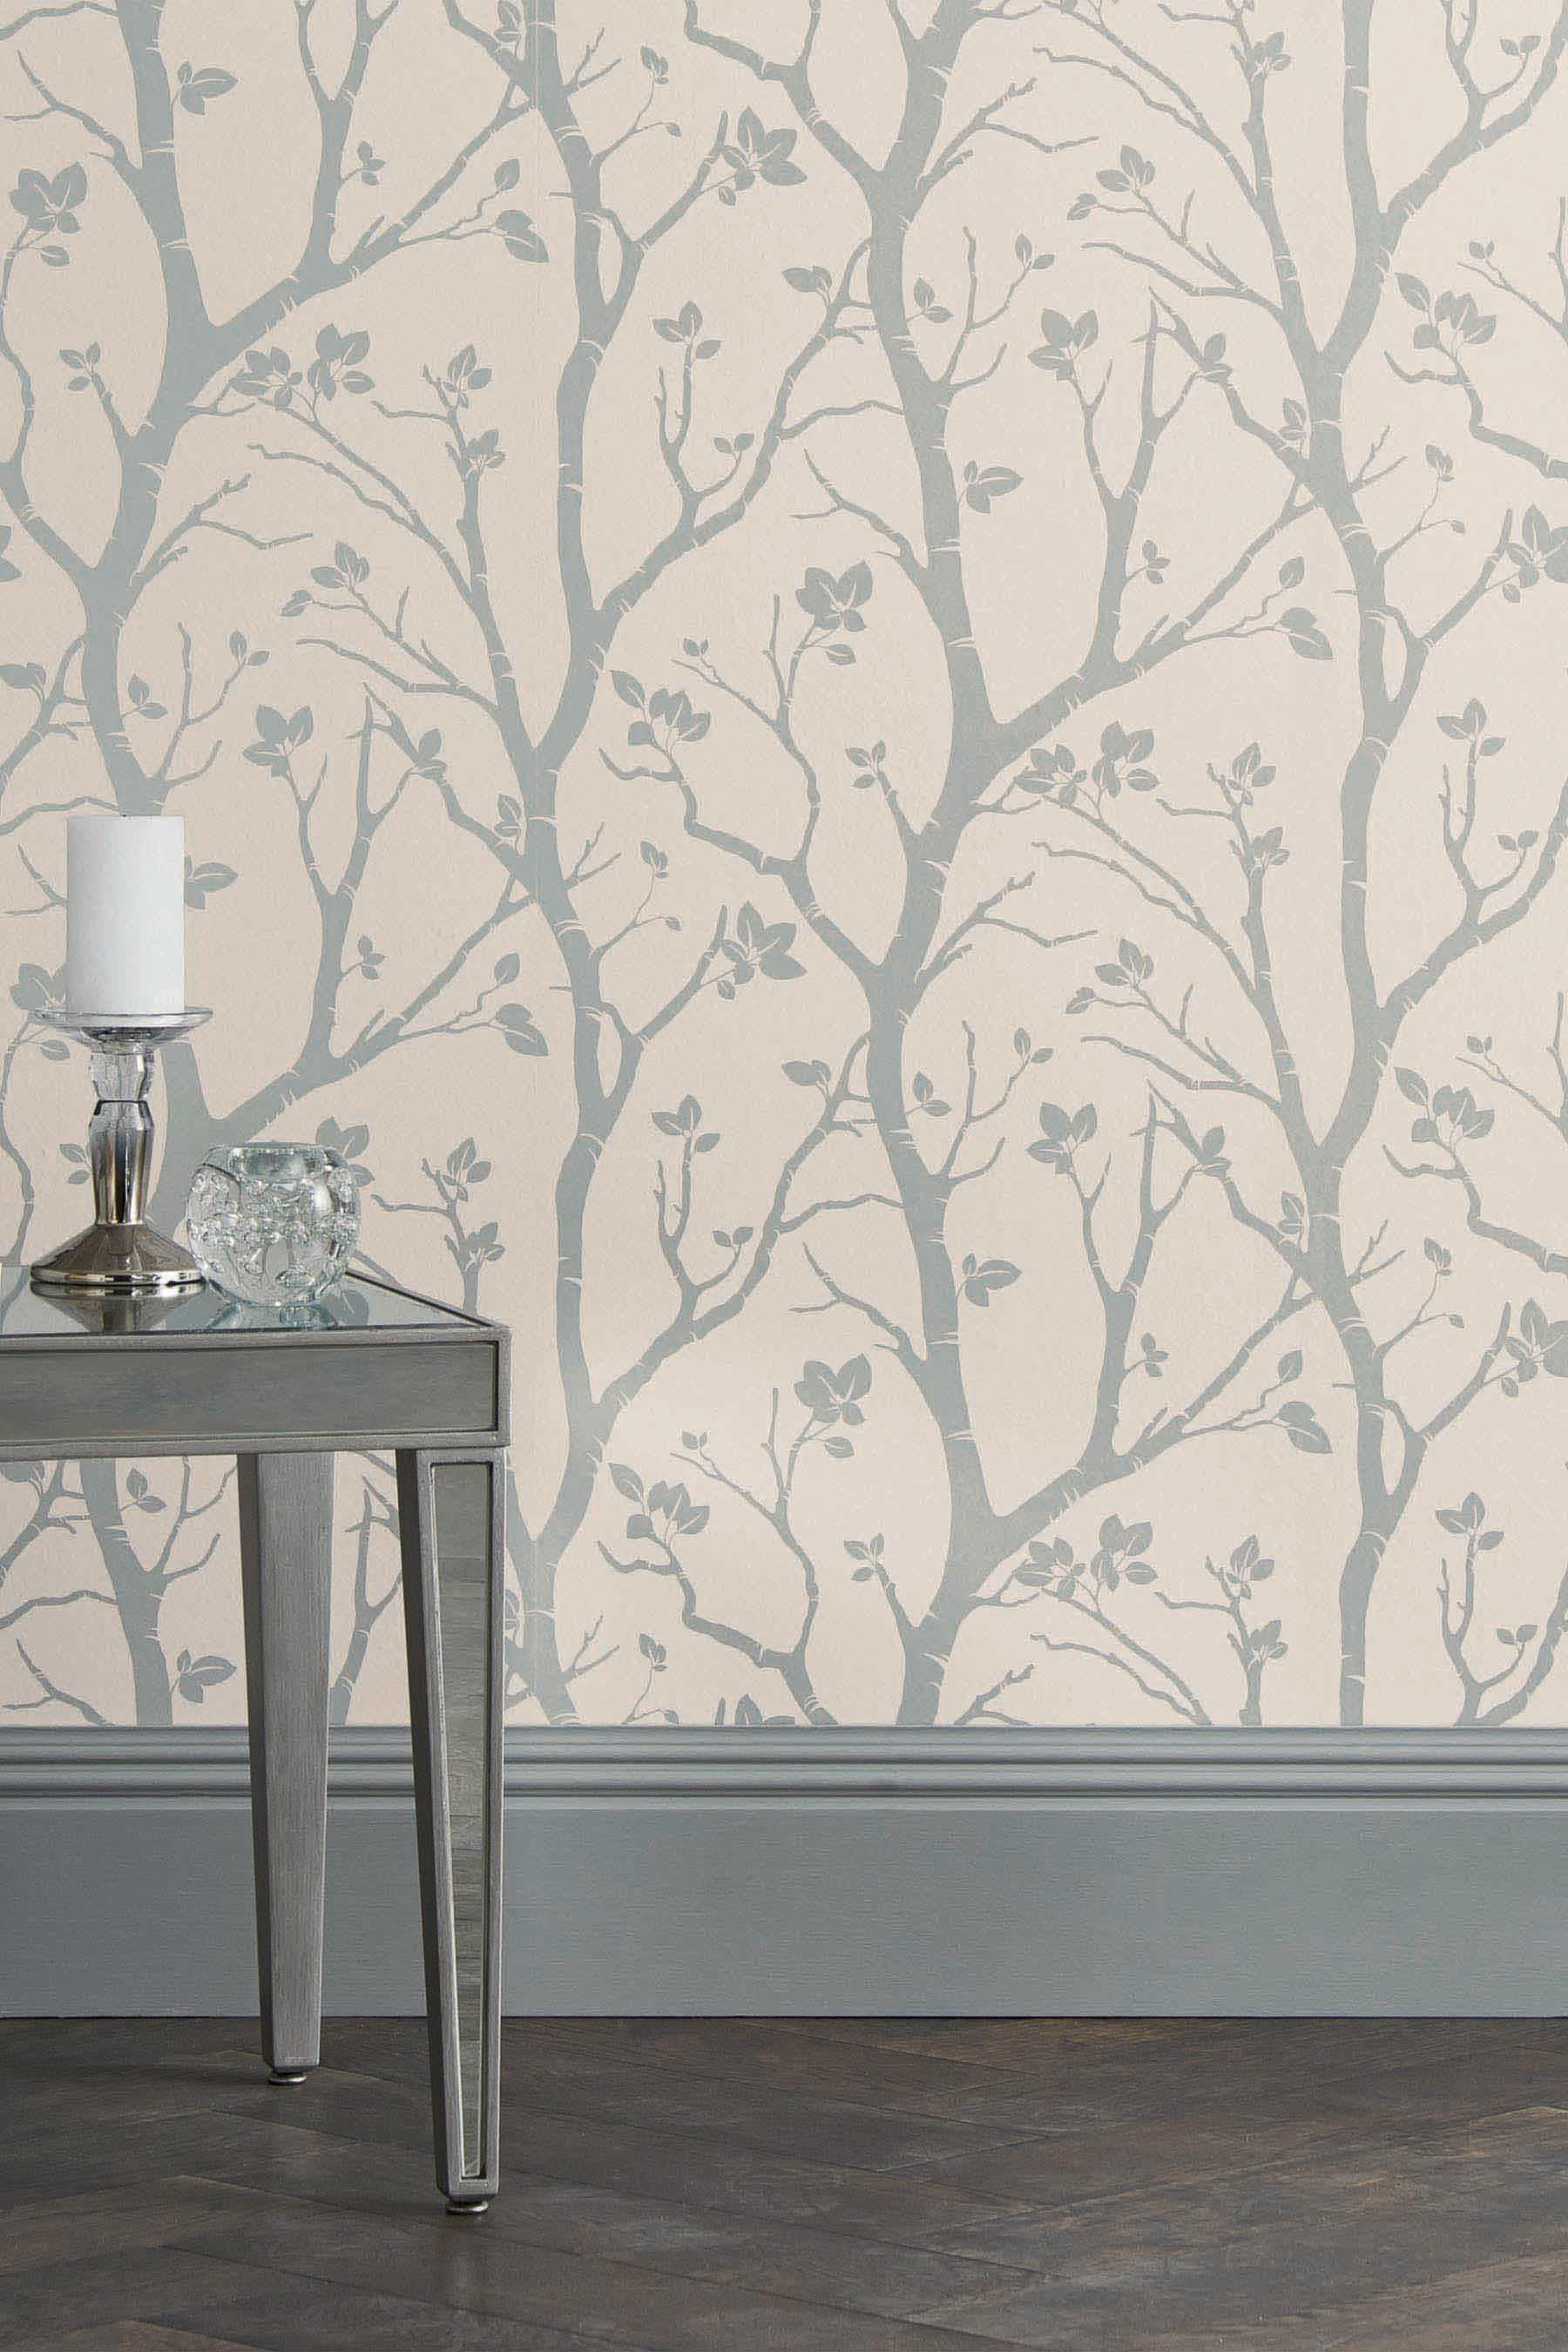 Buy Paste The Wall Silver Woods Wallpaper From The Next Uk On